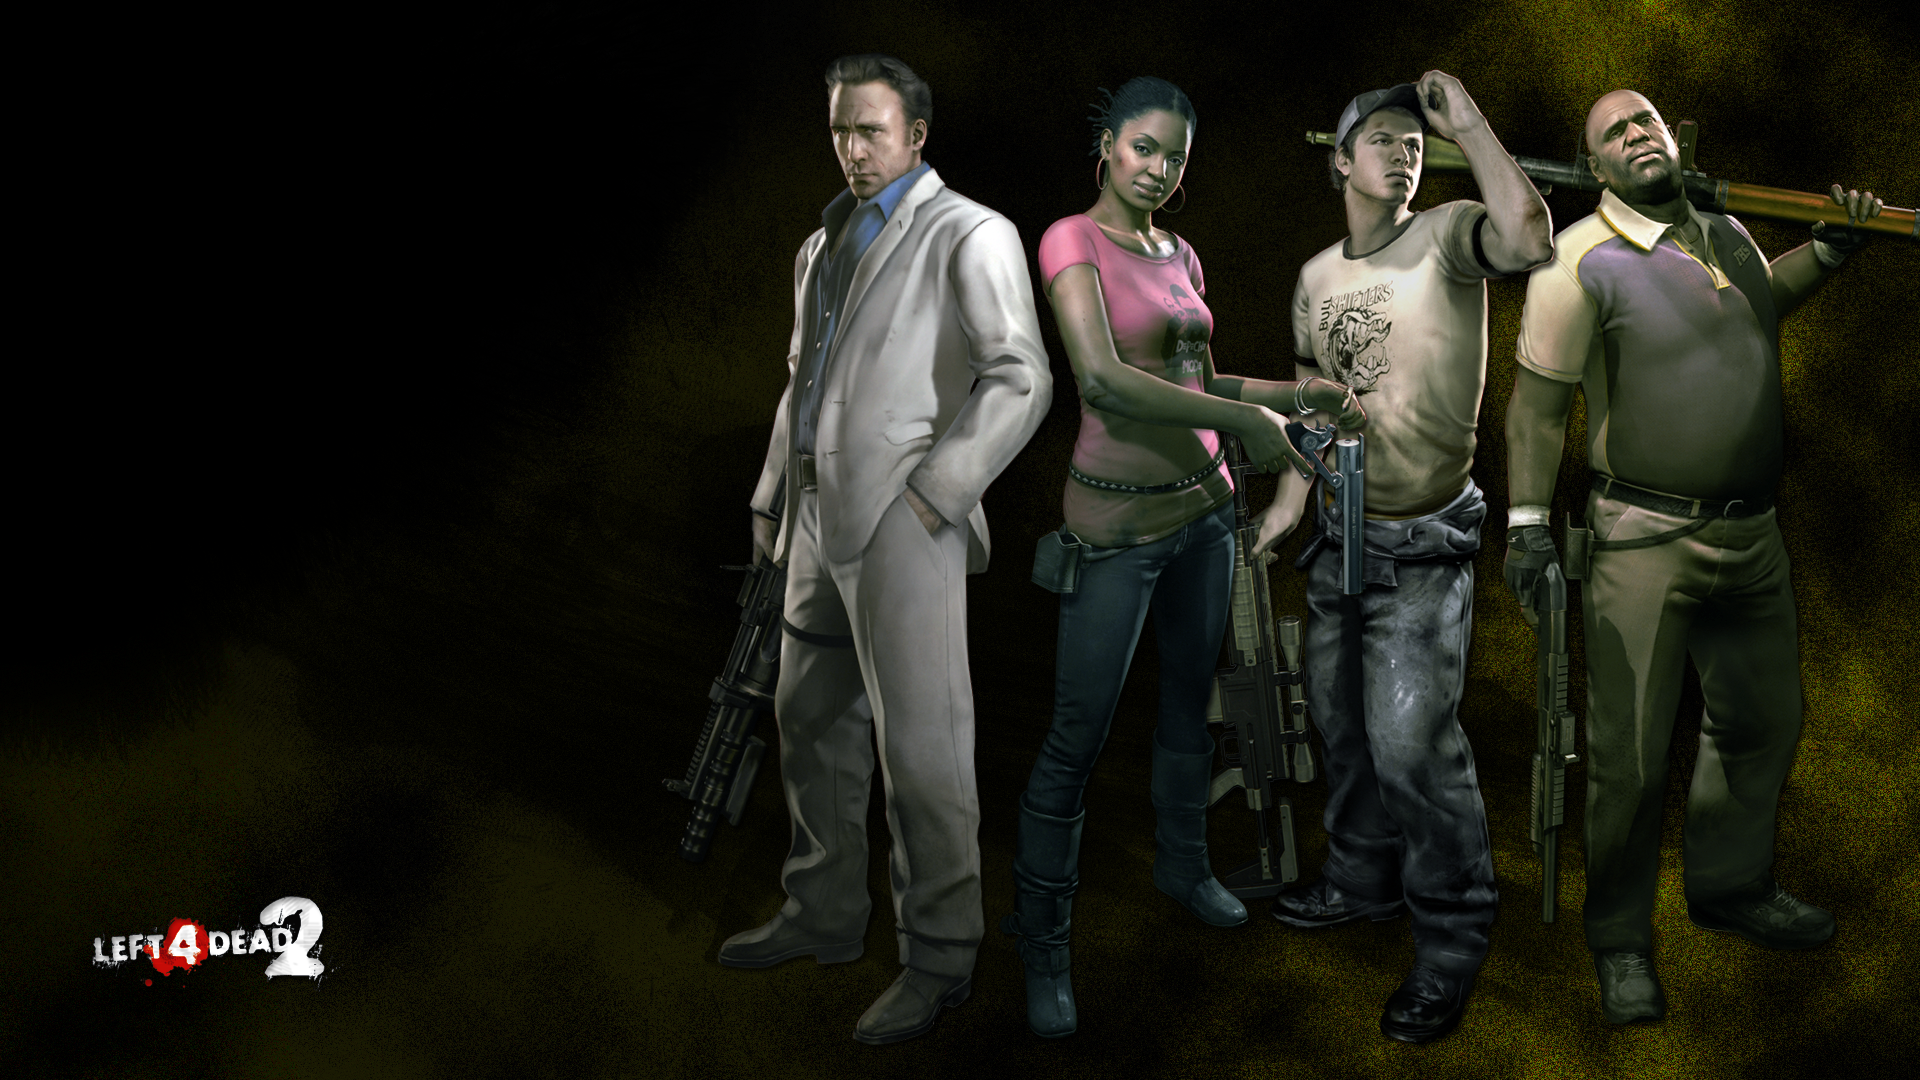 Left 4 Dead 2 RE6 Styled Wallpaper by Glench